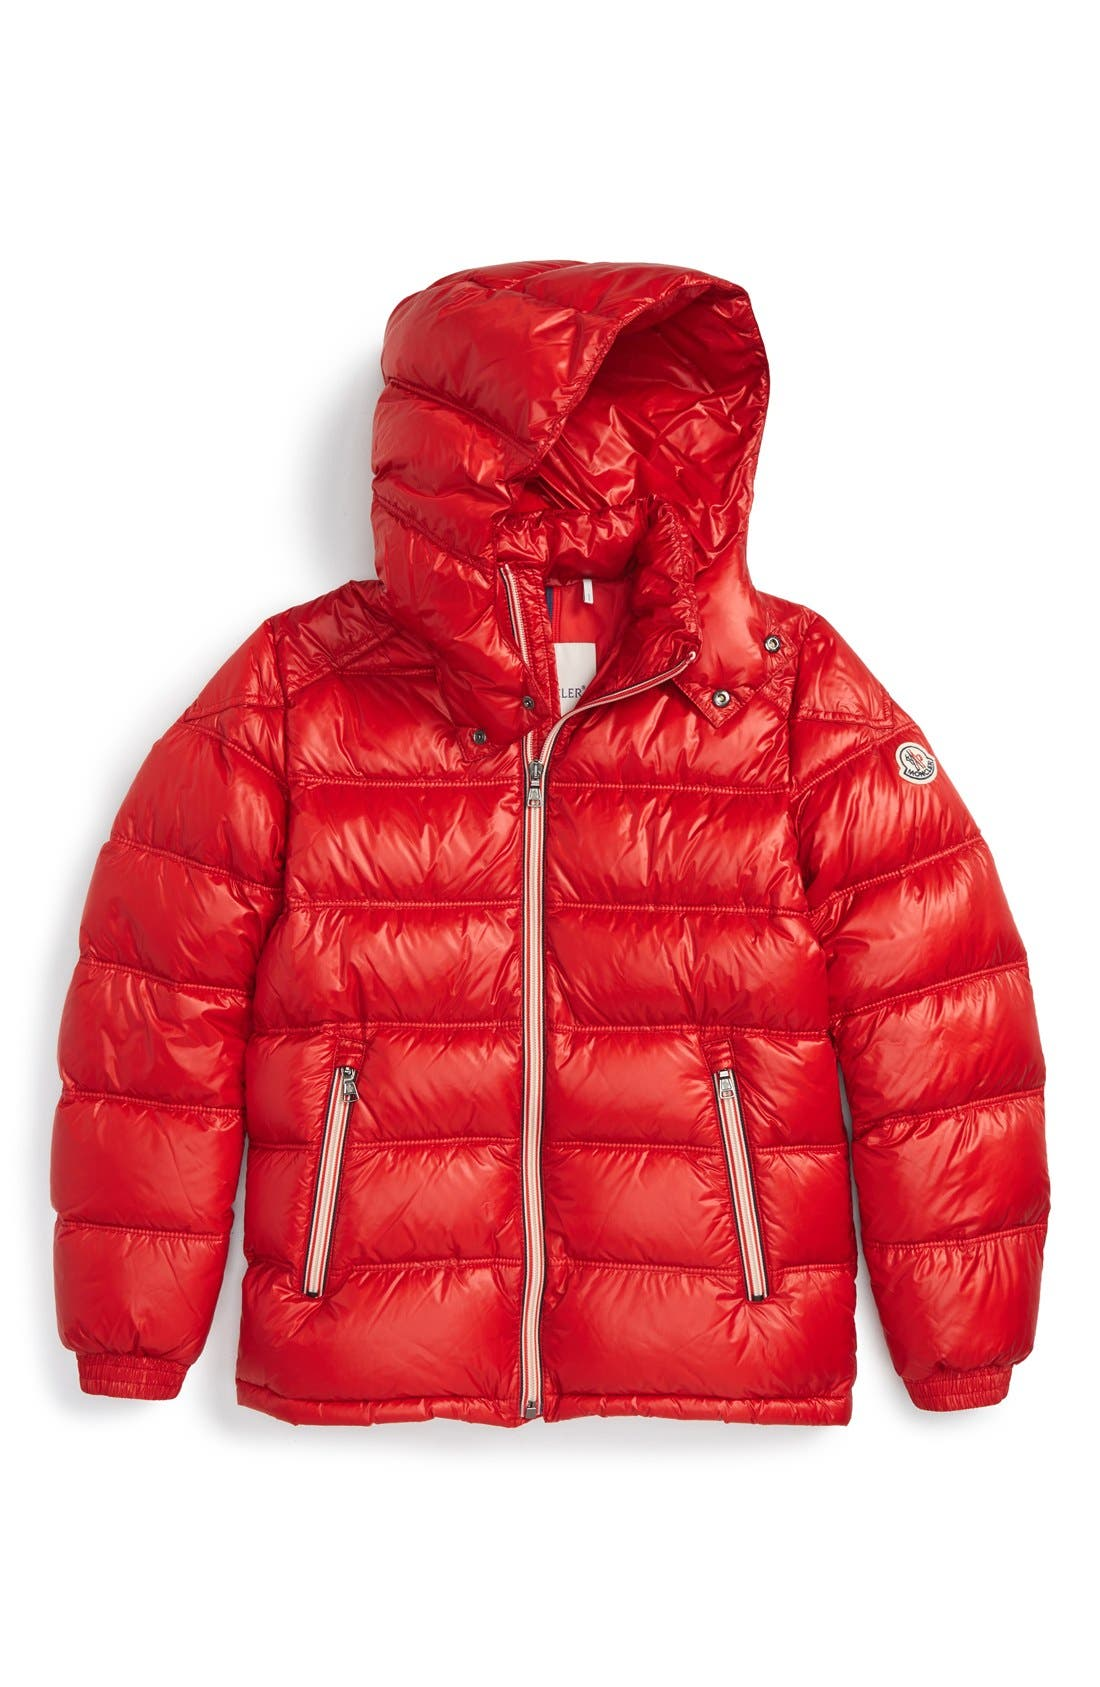 MONCLER 'Gaston' Hooded Down Jacket